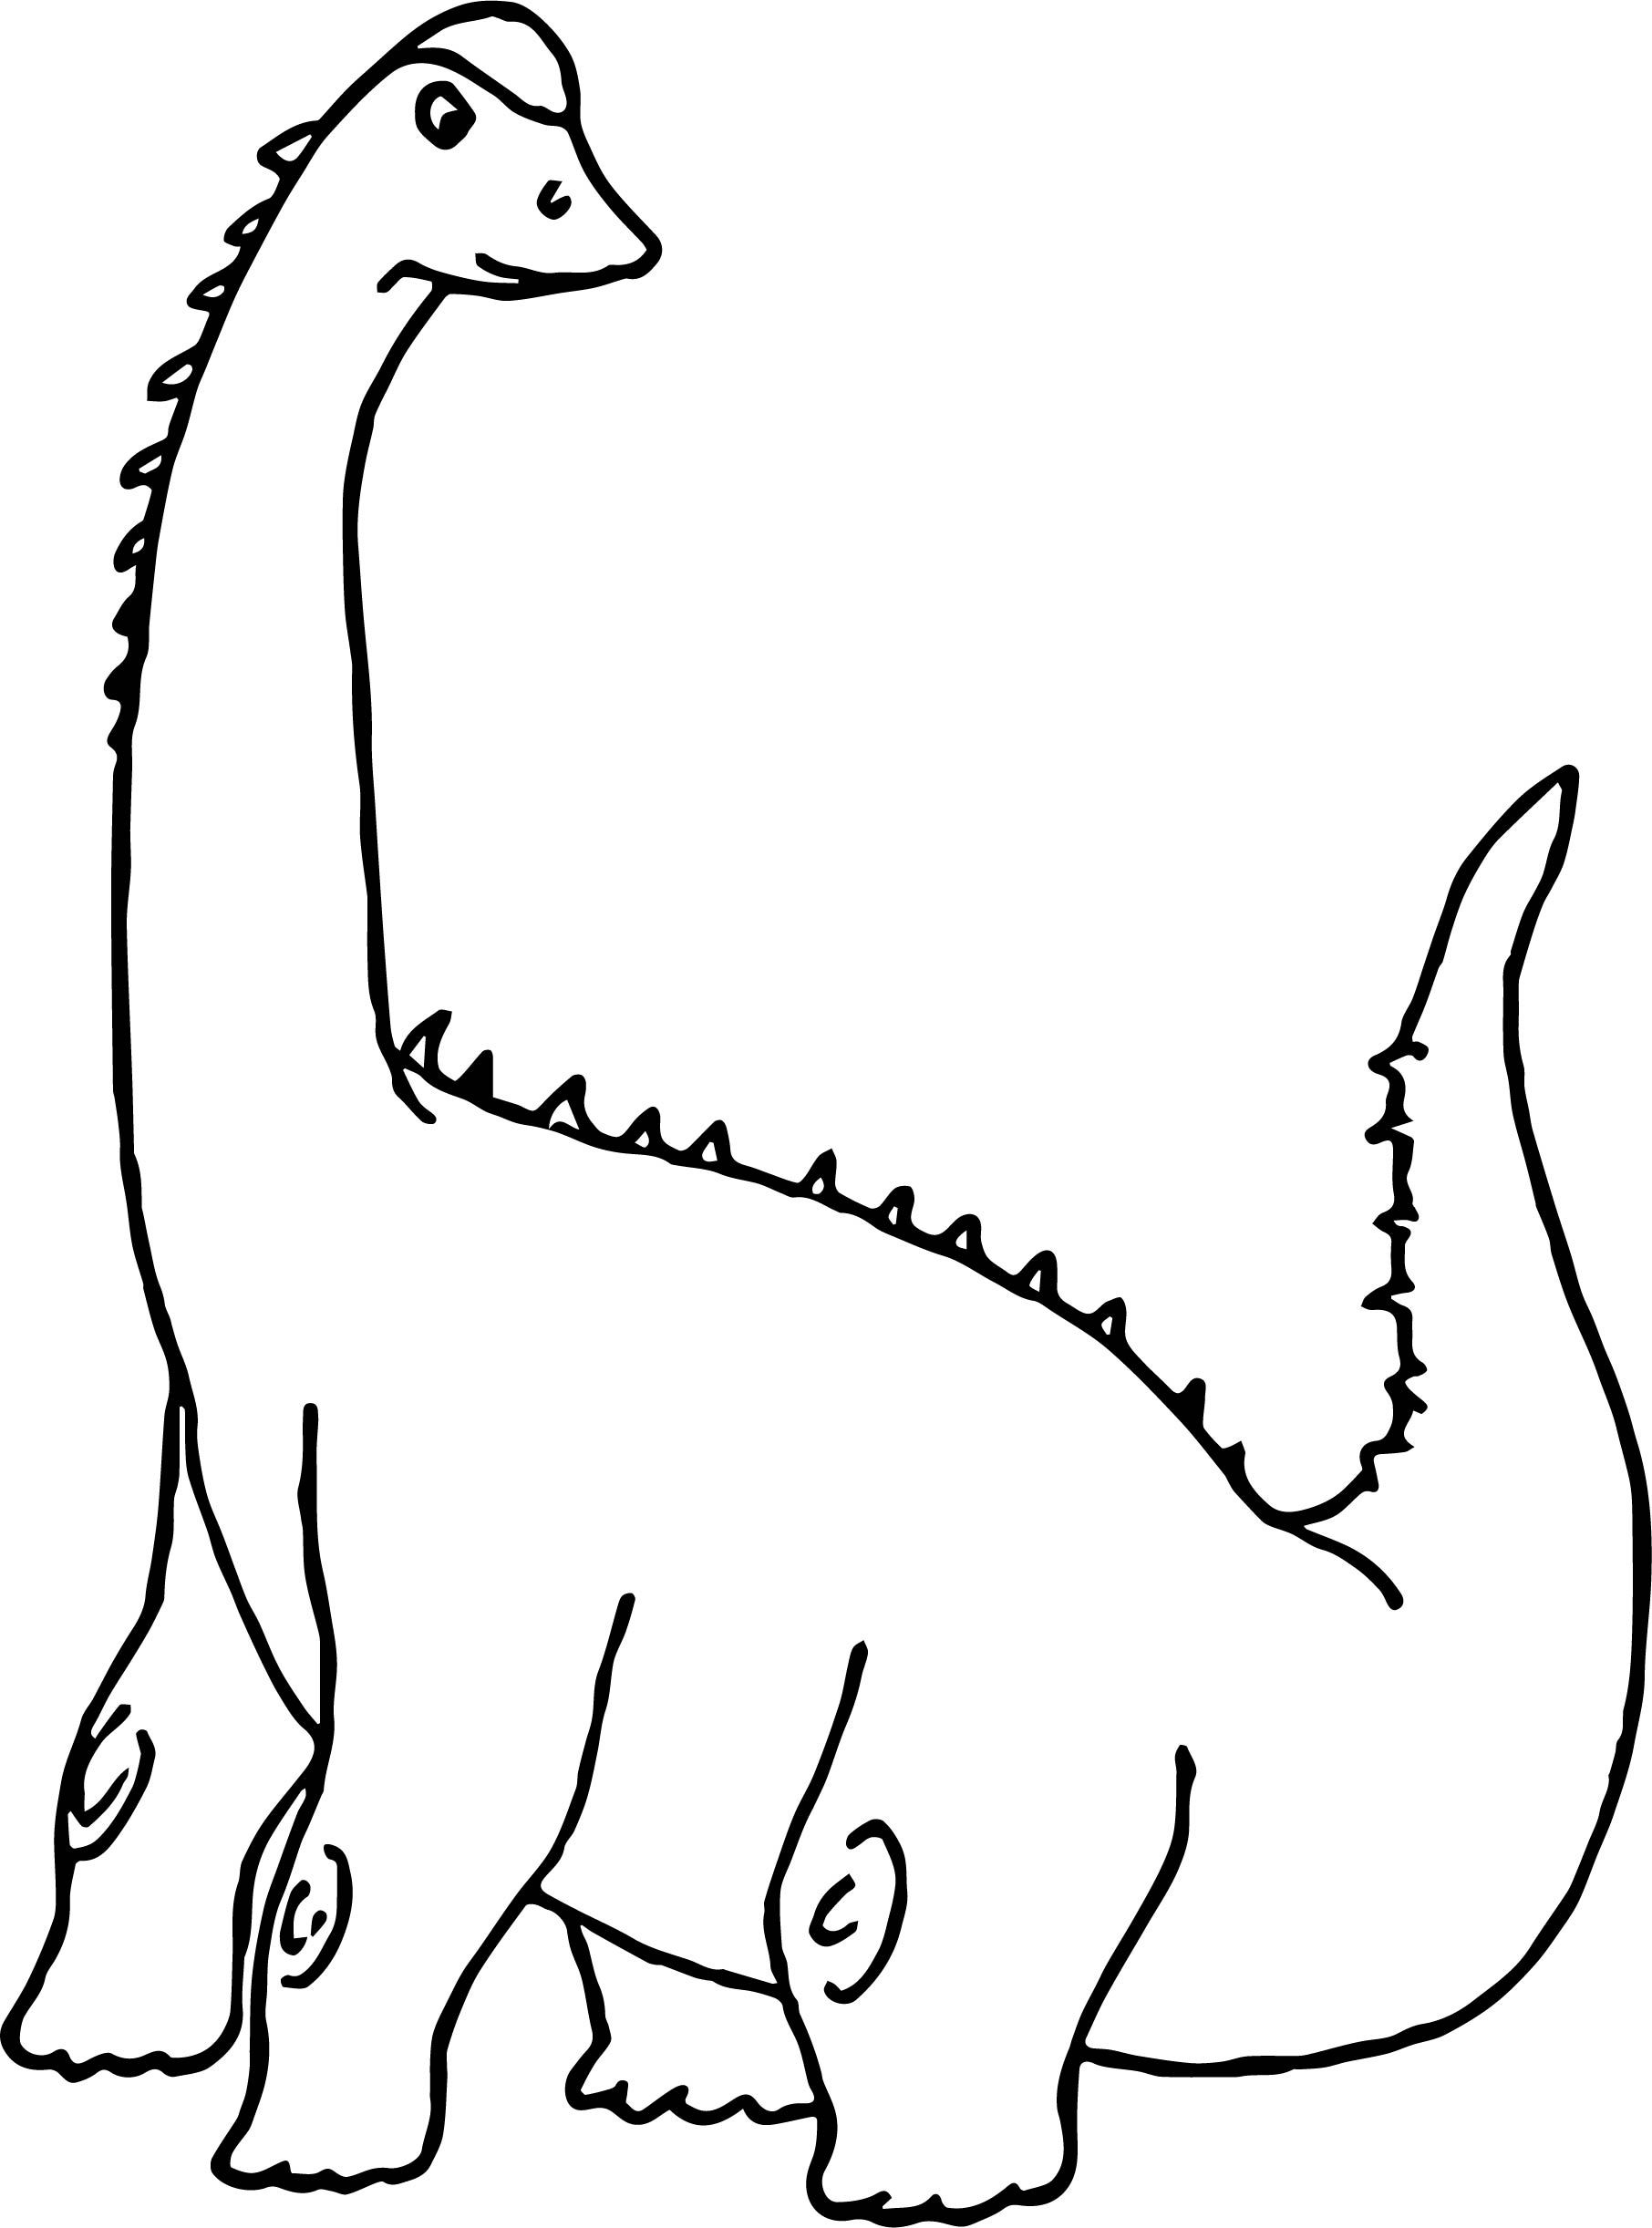 Nice Dinosaur Clipart Sauropod Coloring Page Frog Coloring Pages Coloring Pages For Kids Coloring Pages